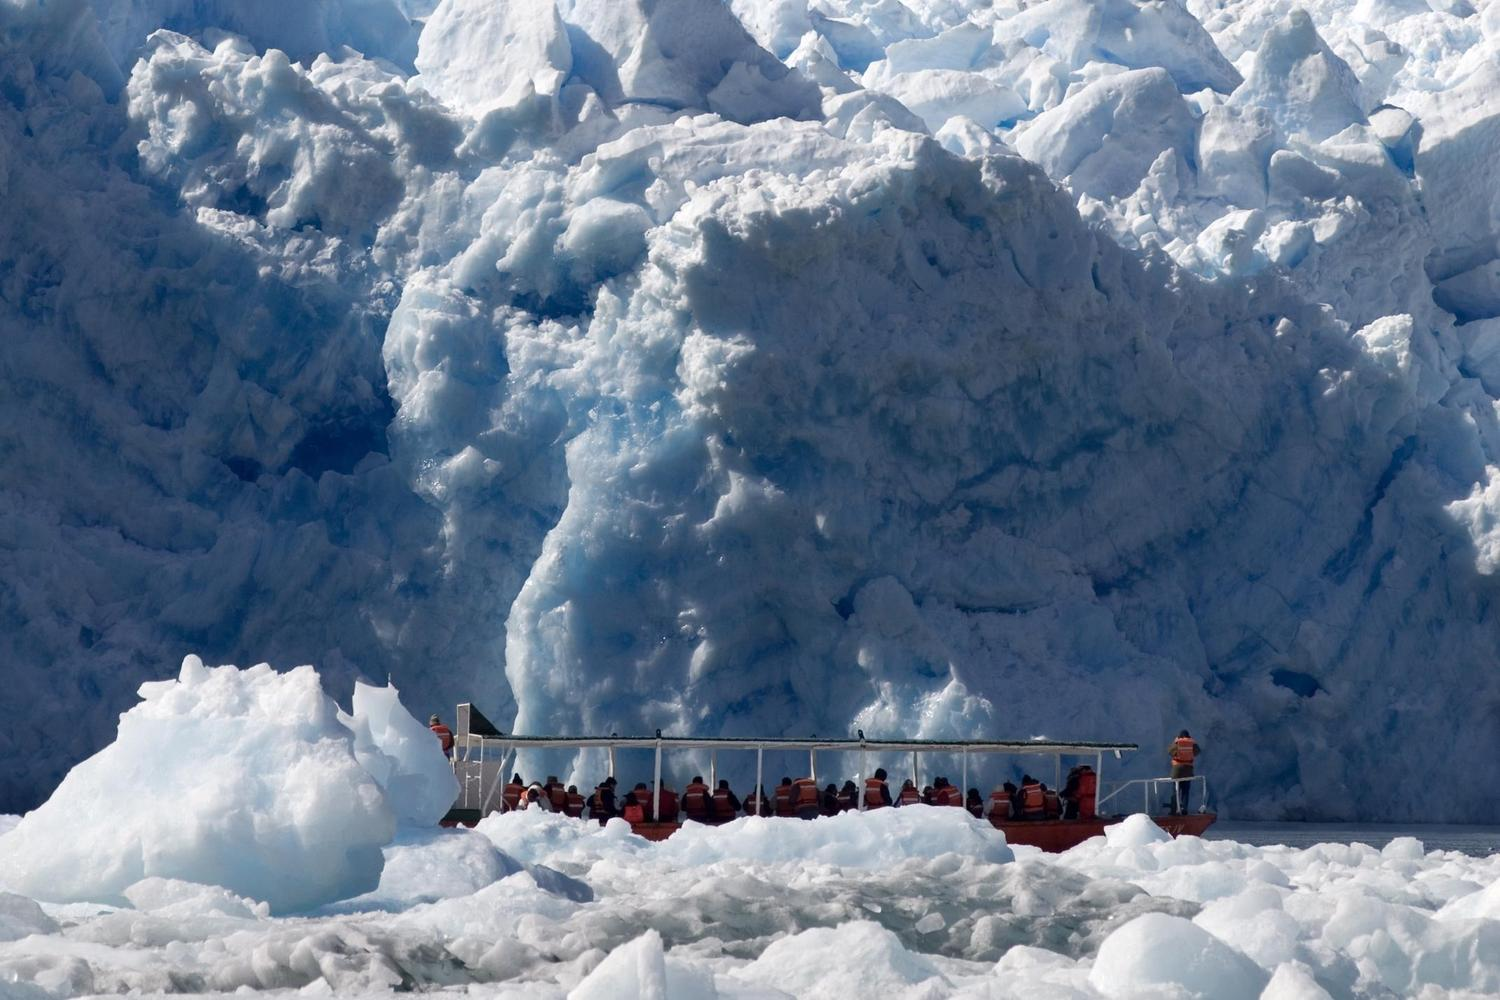 A launch takes you close to the face of the San Rafael glacier